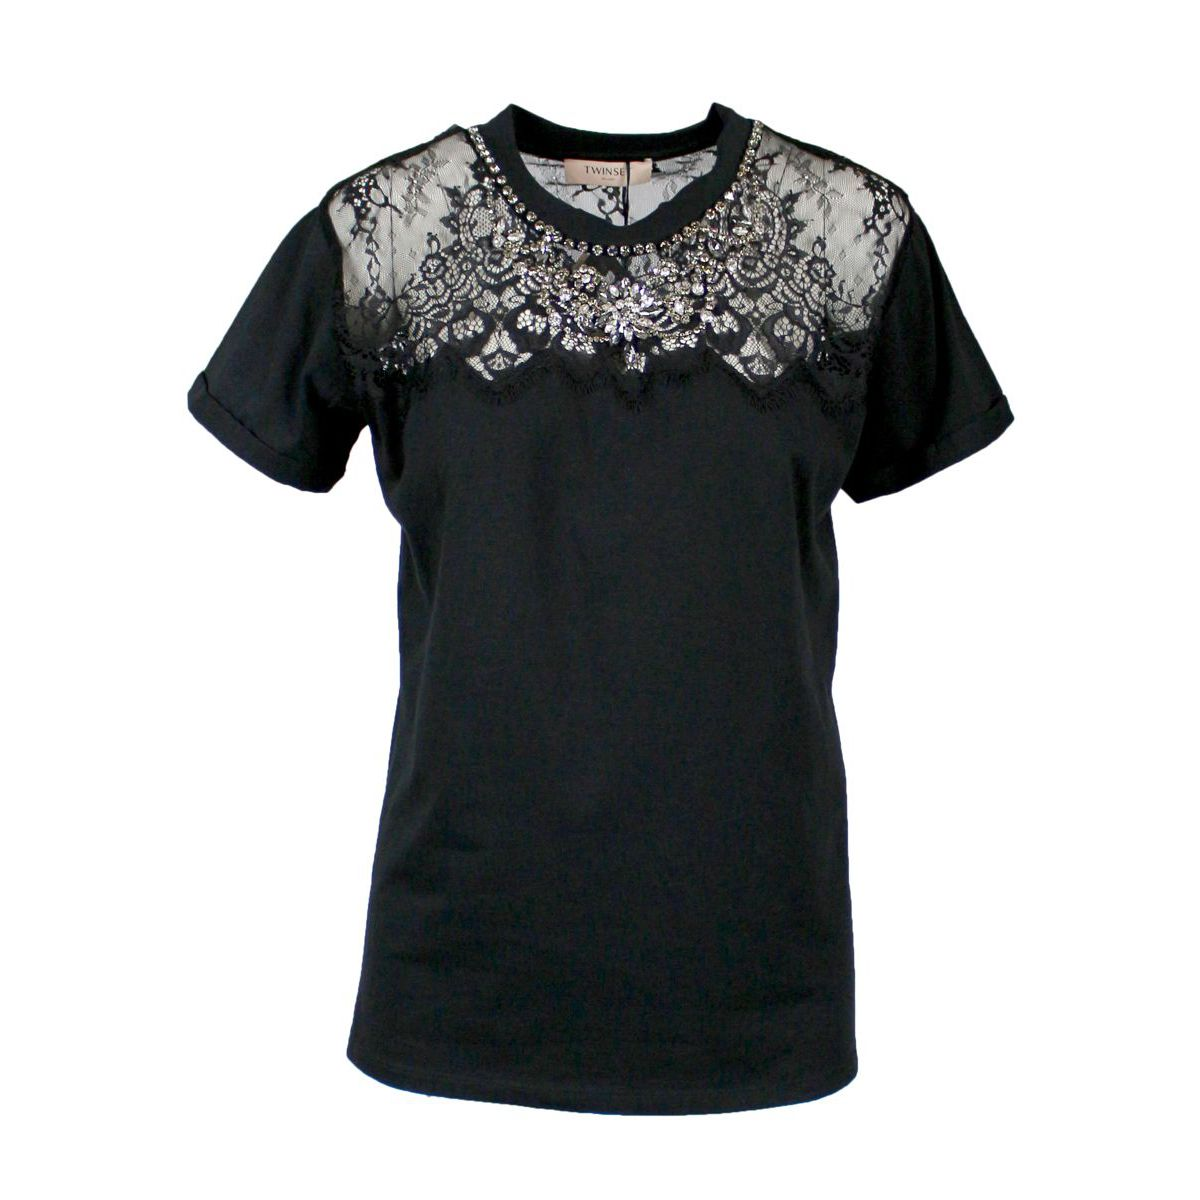 Cotton T-shirt with lace and rhinestone inserts Black Twin-Set